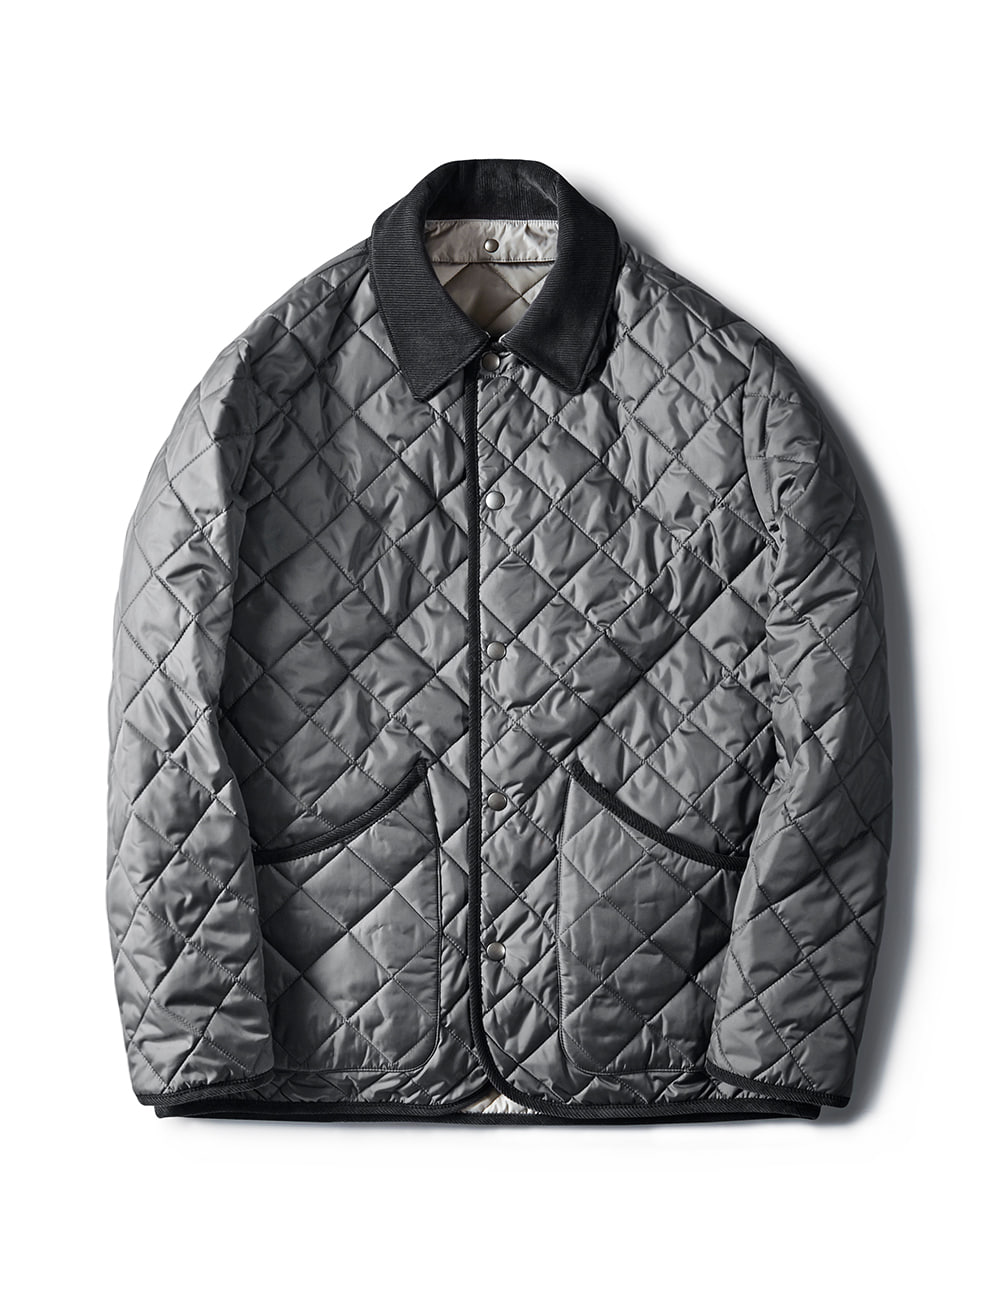 [ESFAI] VOL 3. SN26 DIAMOND QUILTED JACKET (GREY)